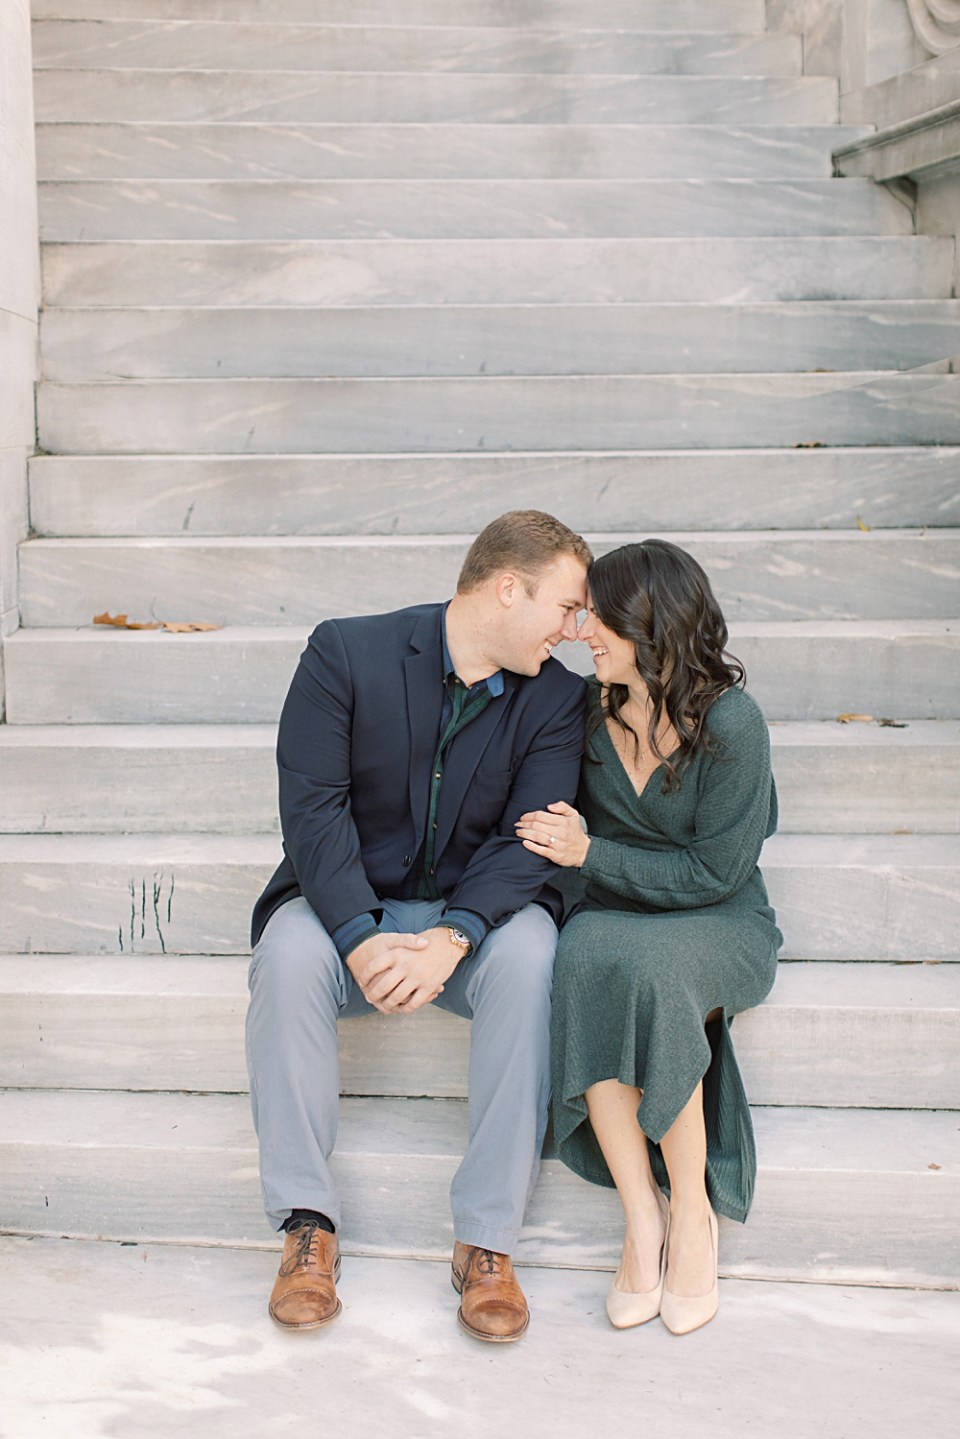 Engagement Photos at Merchant's Exchange Building | Old City Philadelphia Engagement Session | Sarah Canning